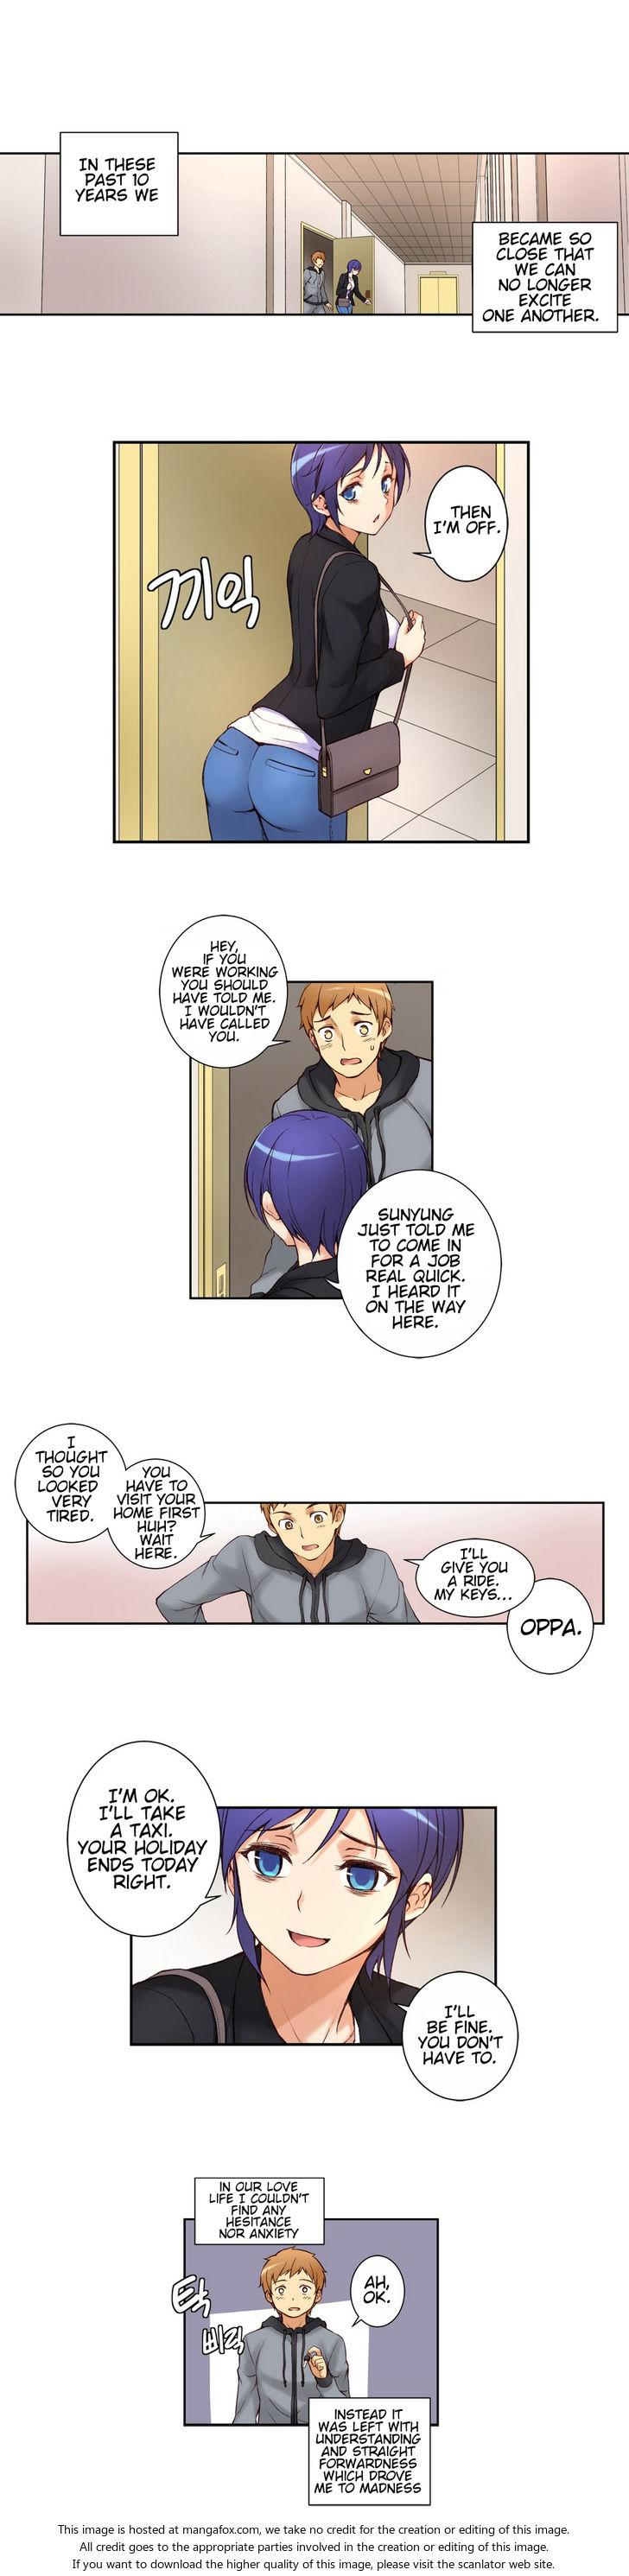 [Donggul Gom] She is Young (English) Part 1/2 8